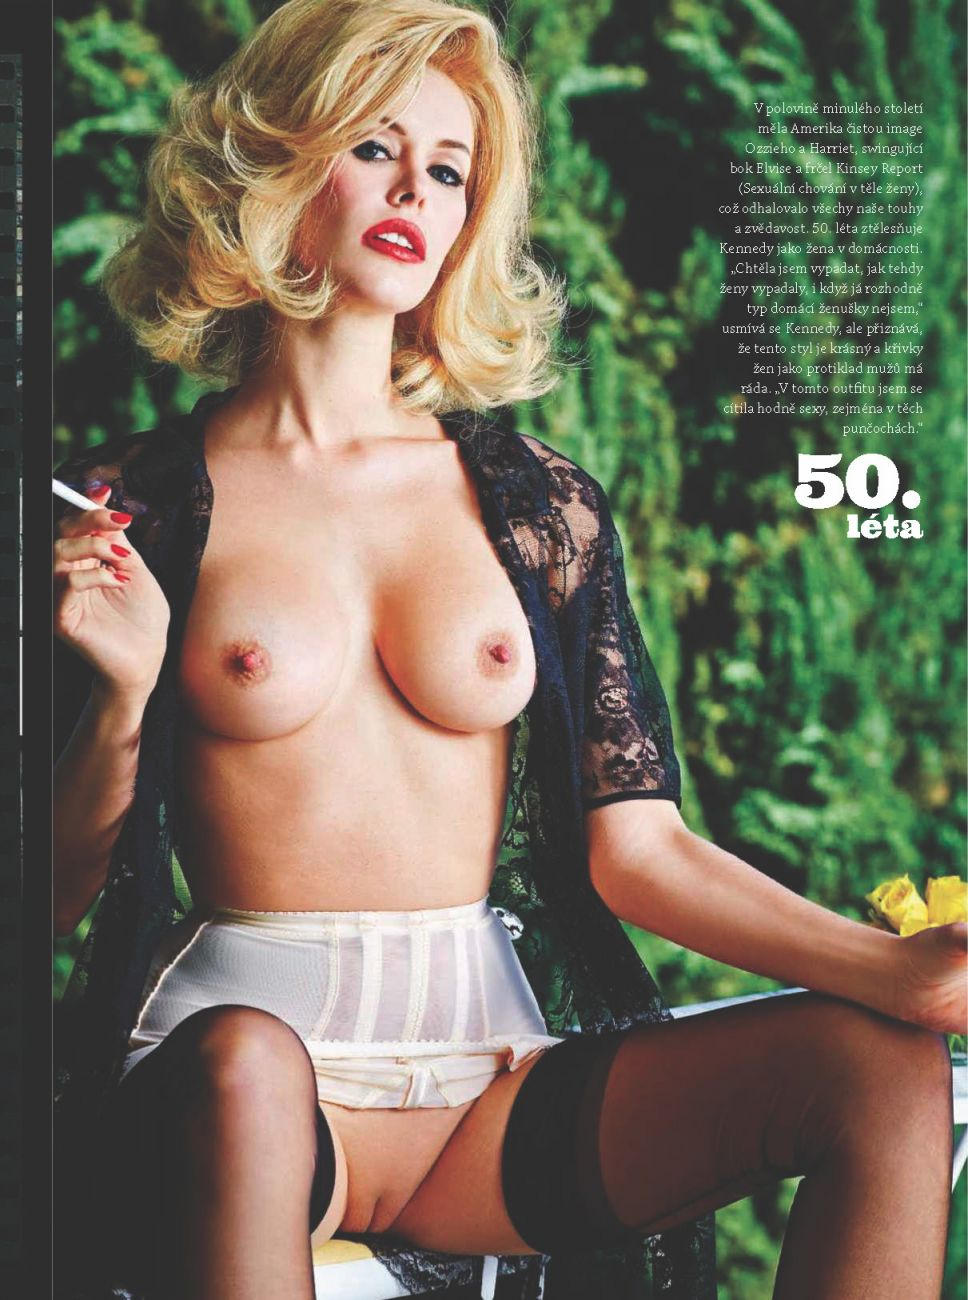 Kennedy summers nude 27 Photos - 2019 year